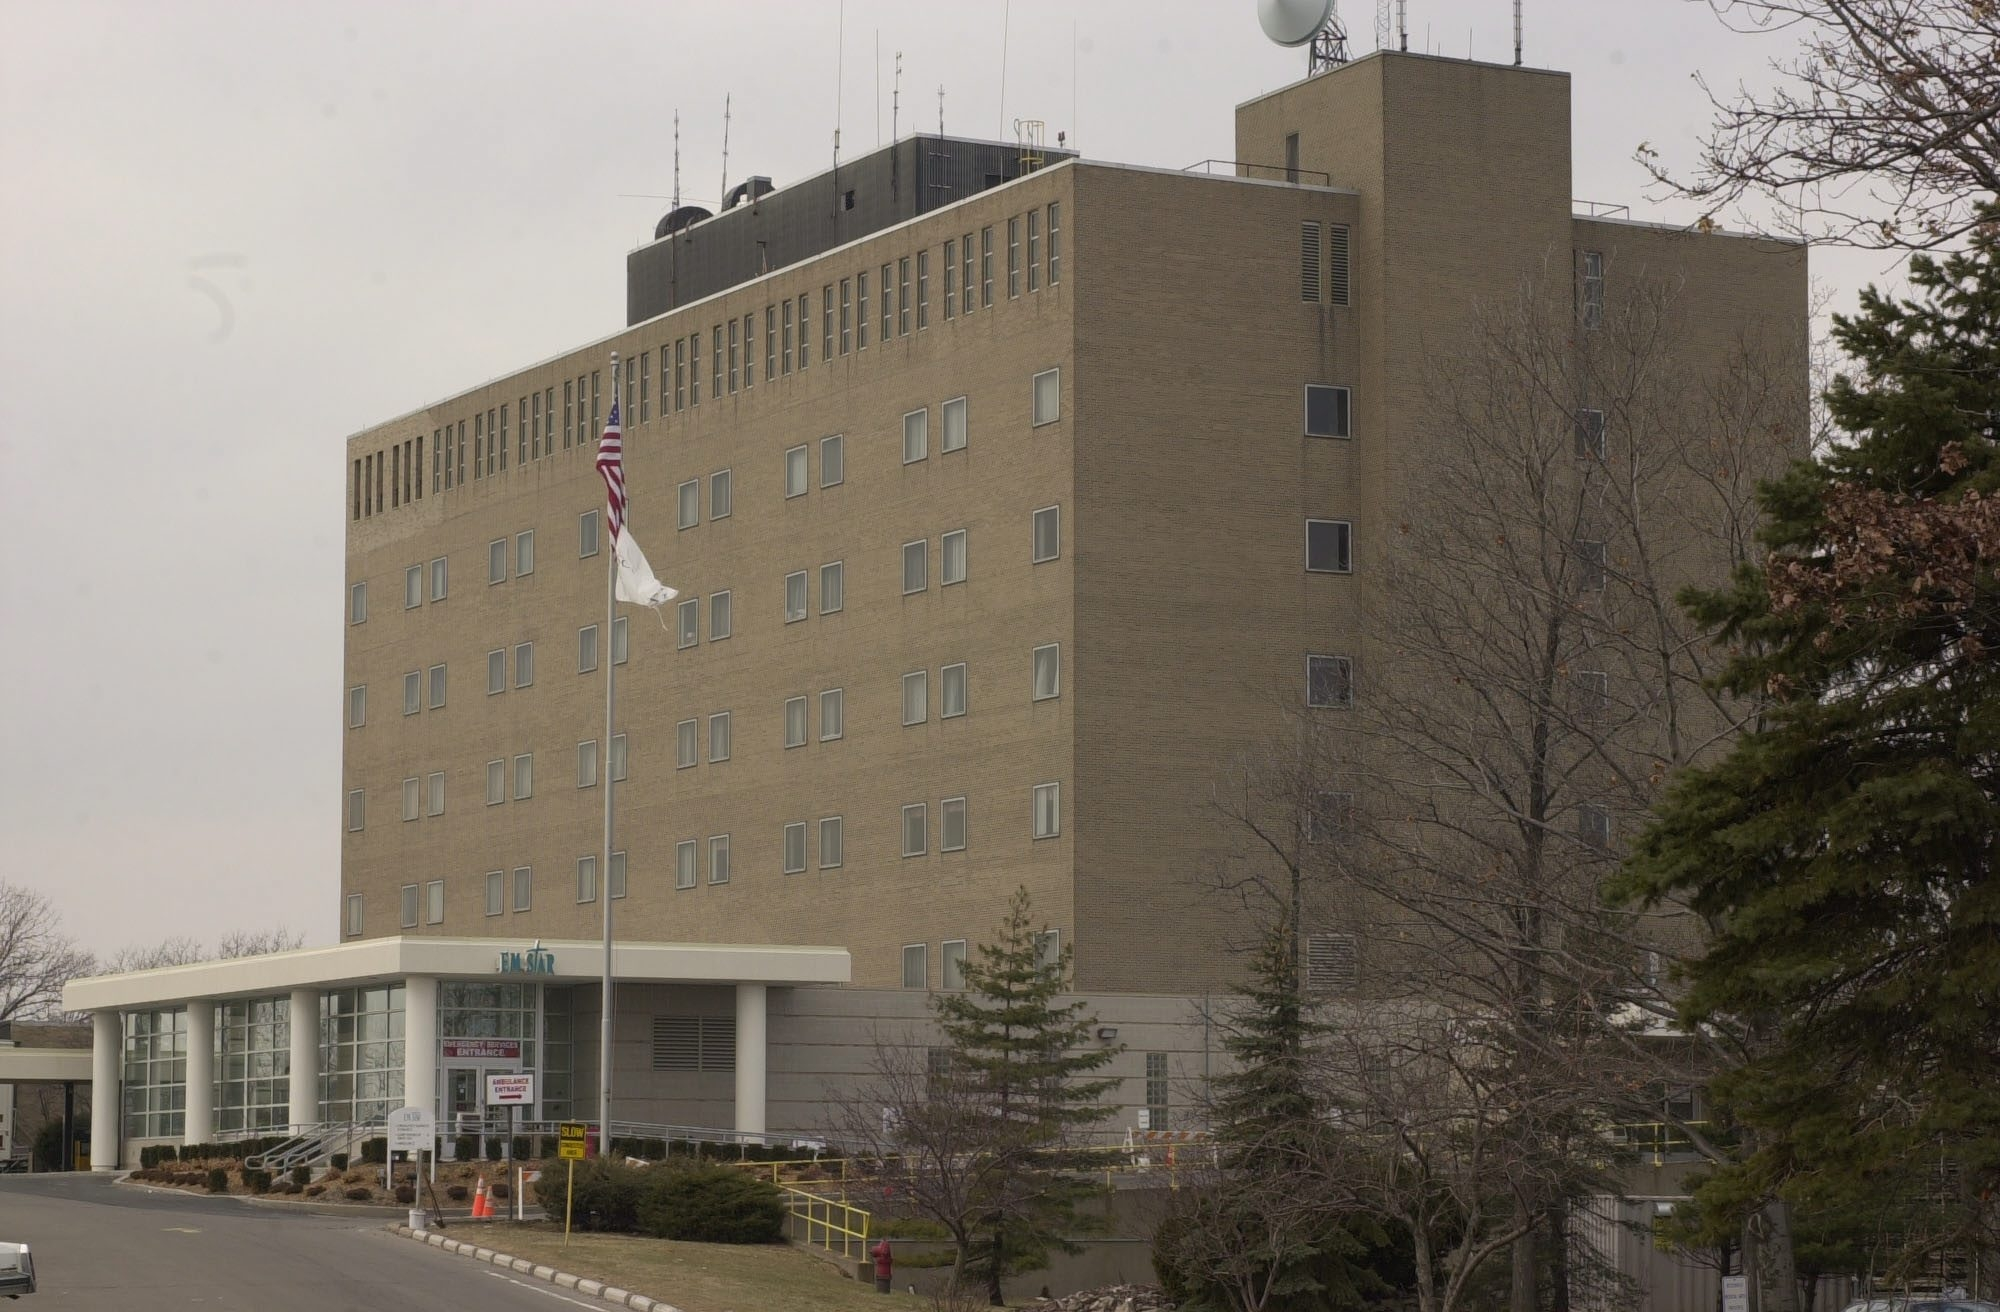 Mount St. Mary's Hospital in Lewiston is currently part of Ascension Health; its Our Lady of Peace nursing home will remain part of Ascension.